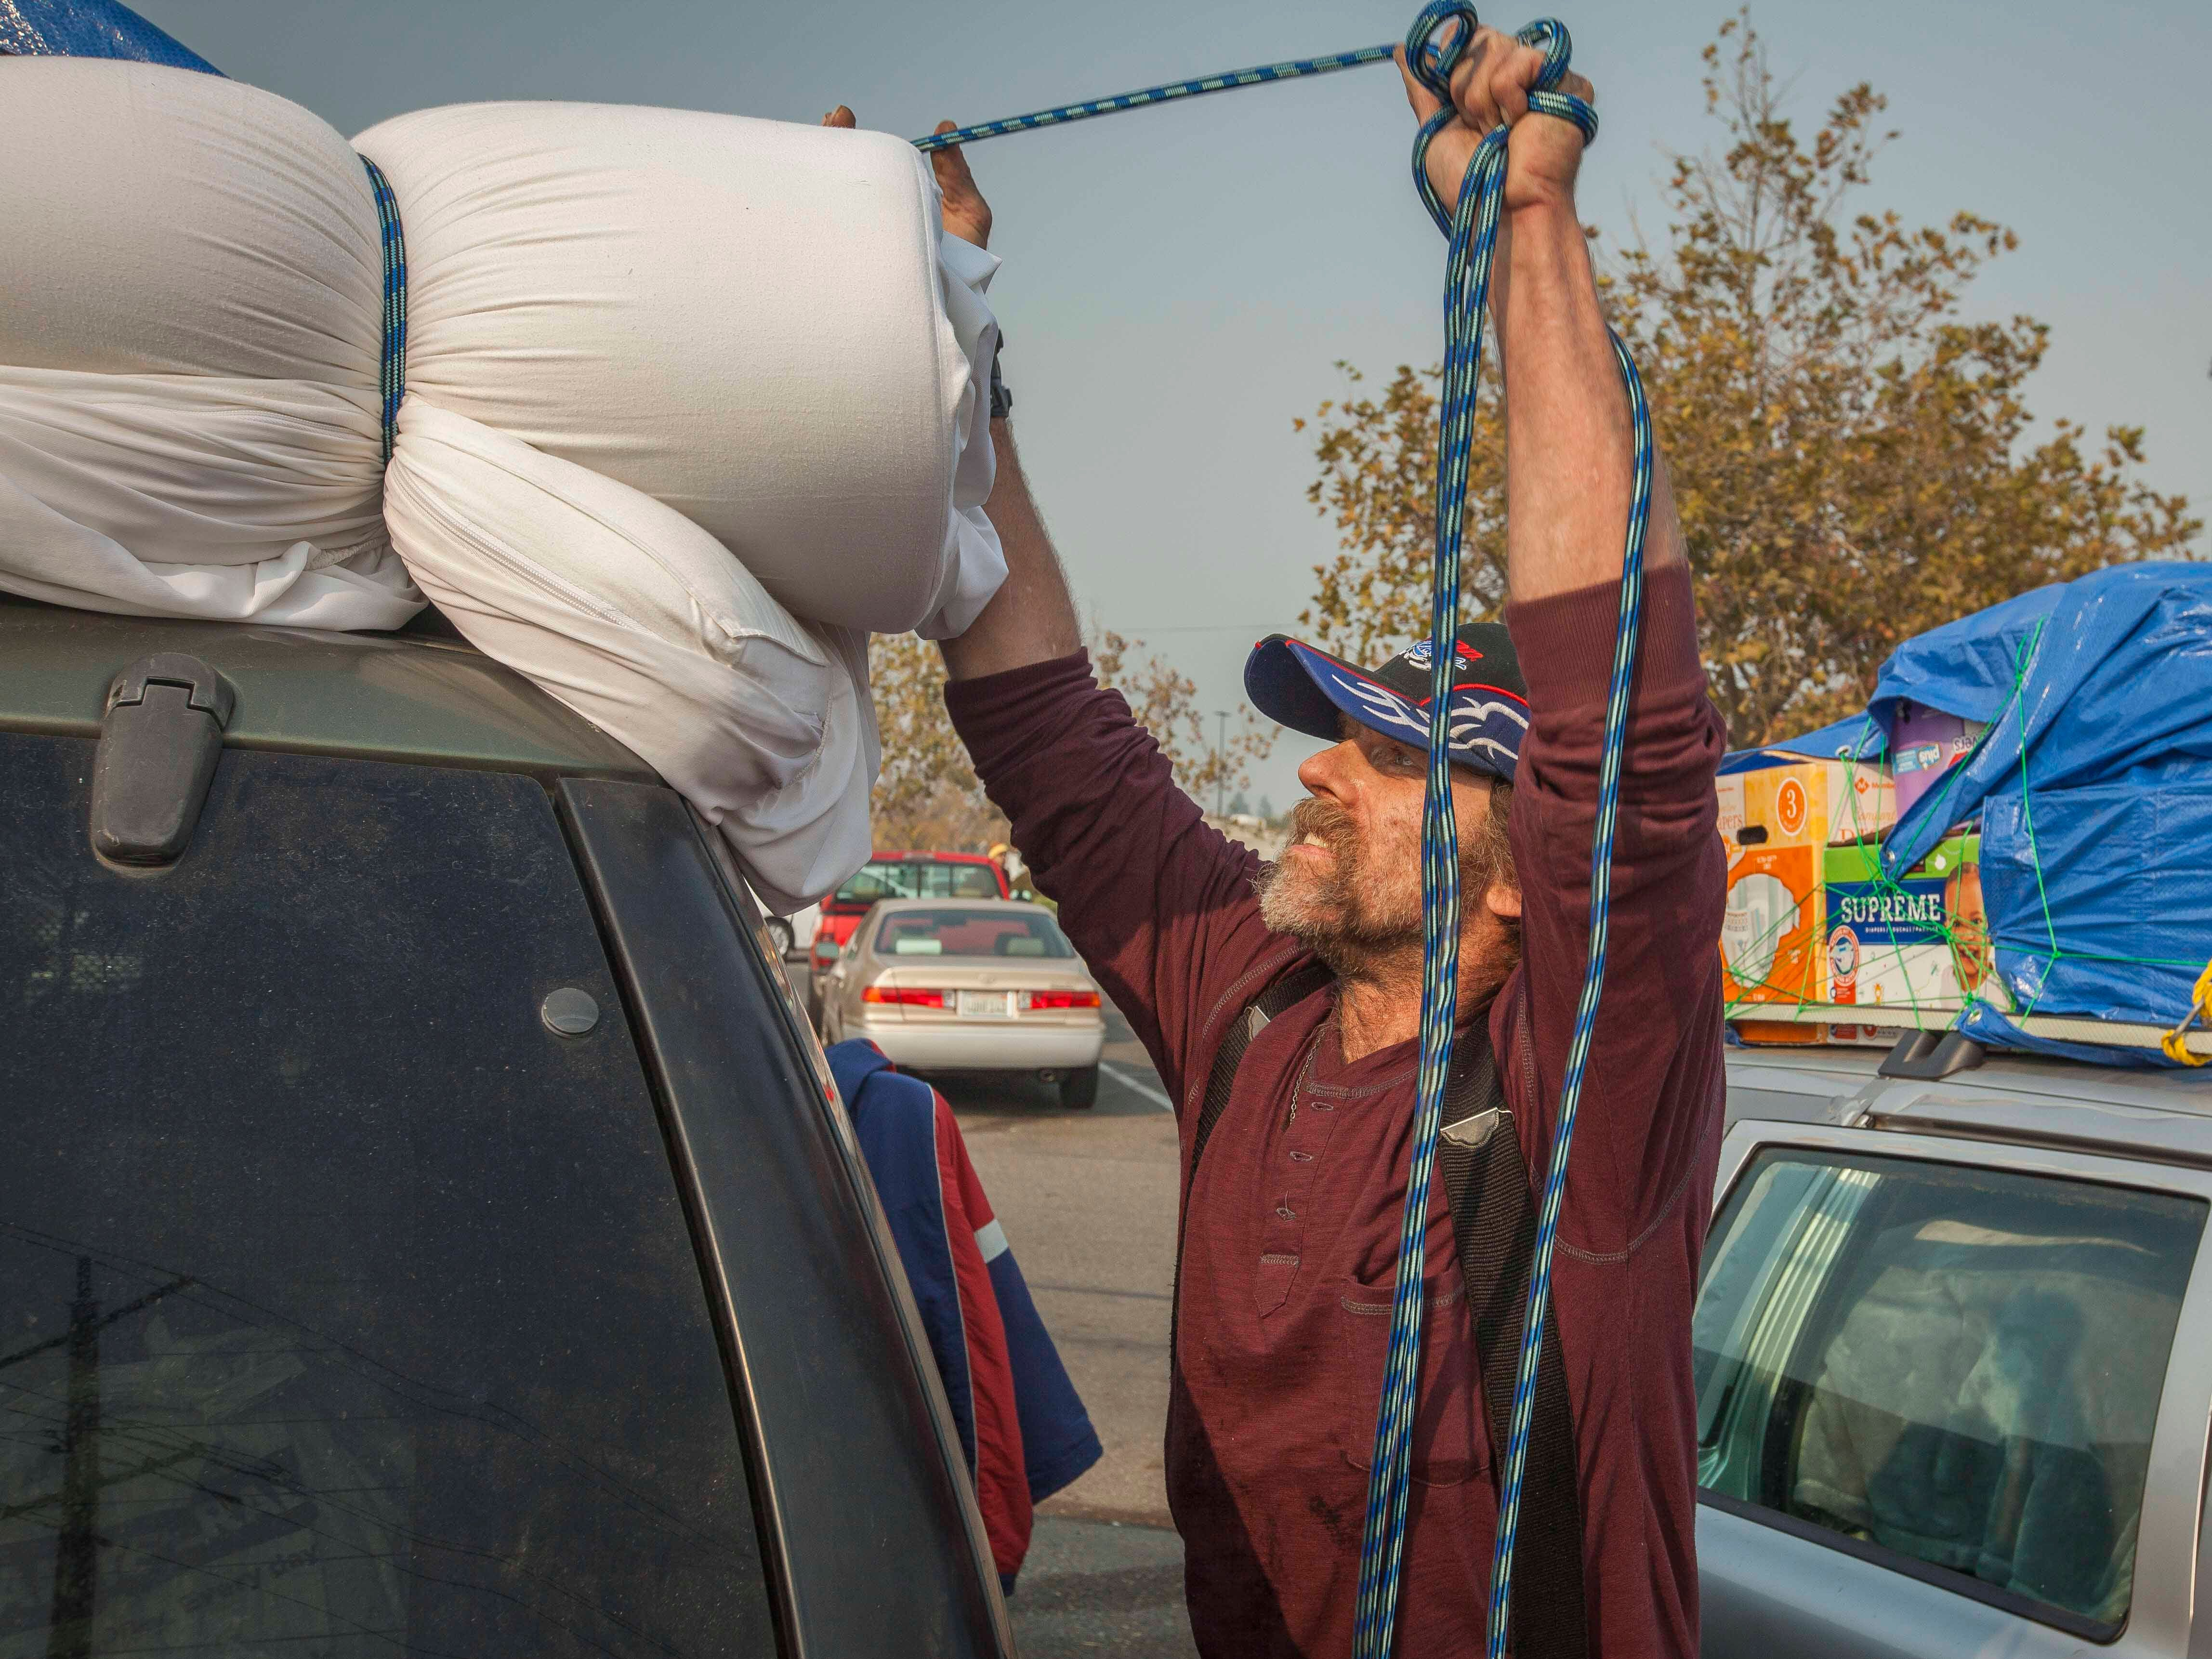 John Richards secures items on top of his SUV as he and his girlfriend pack up their belongings from the field next to the Walmart in Chico, Calif. on Nov. 18, 2018.